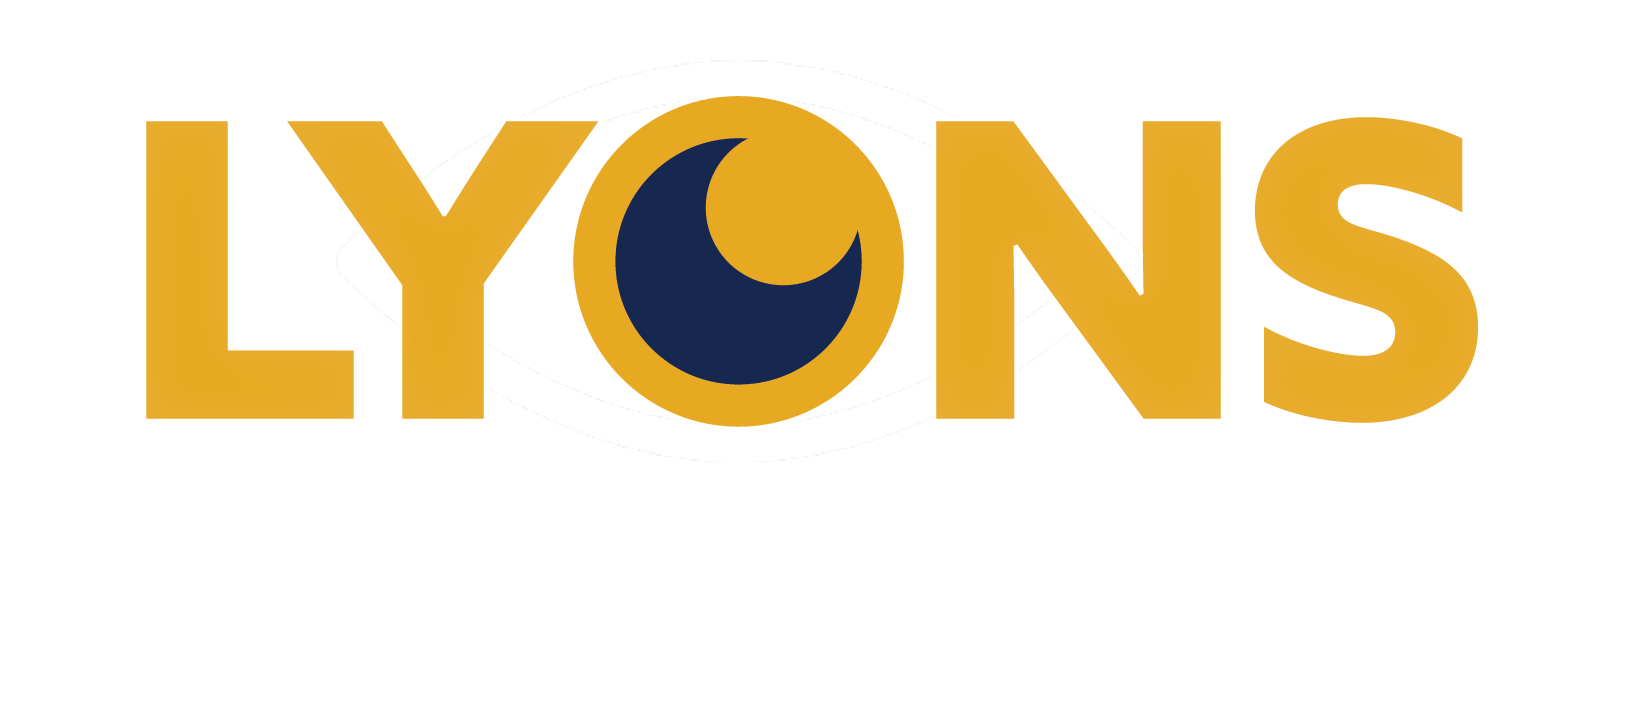 LYONS Global Investigations